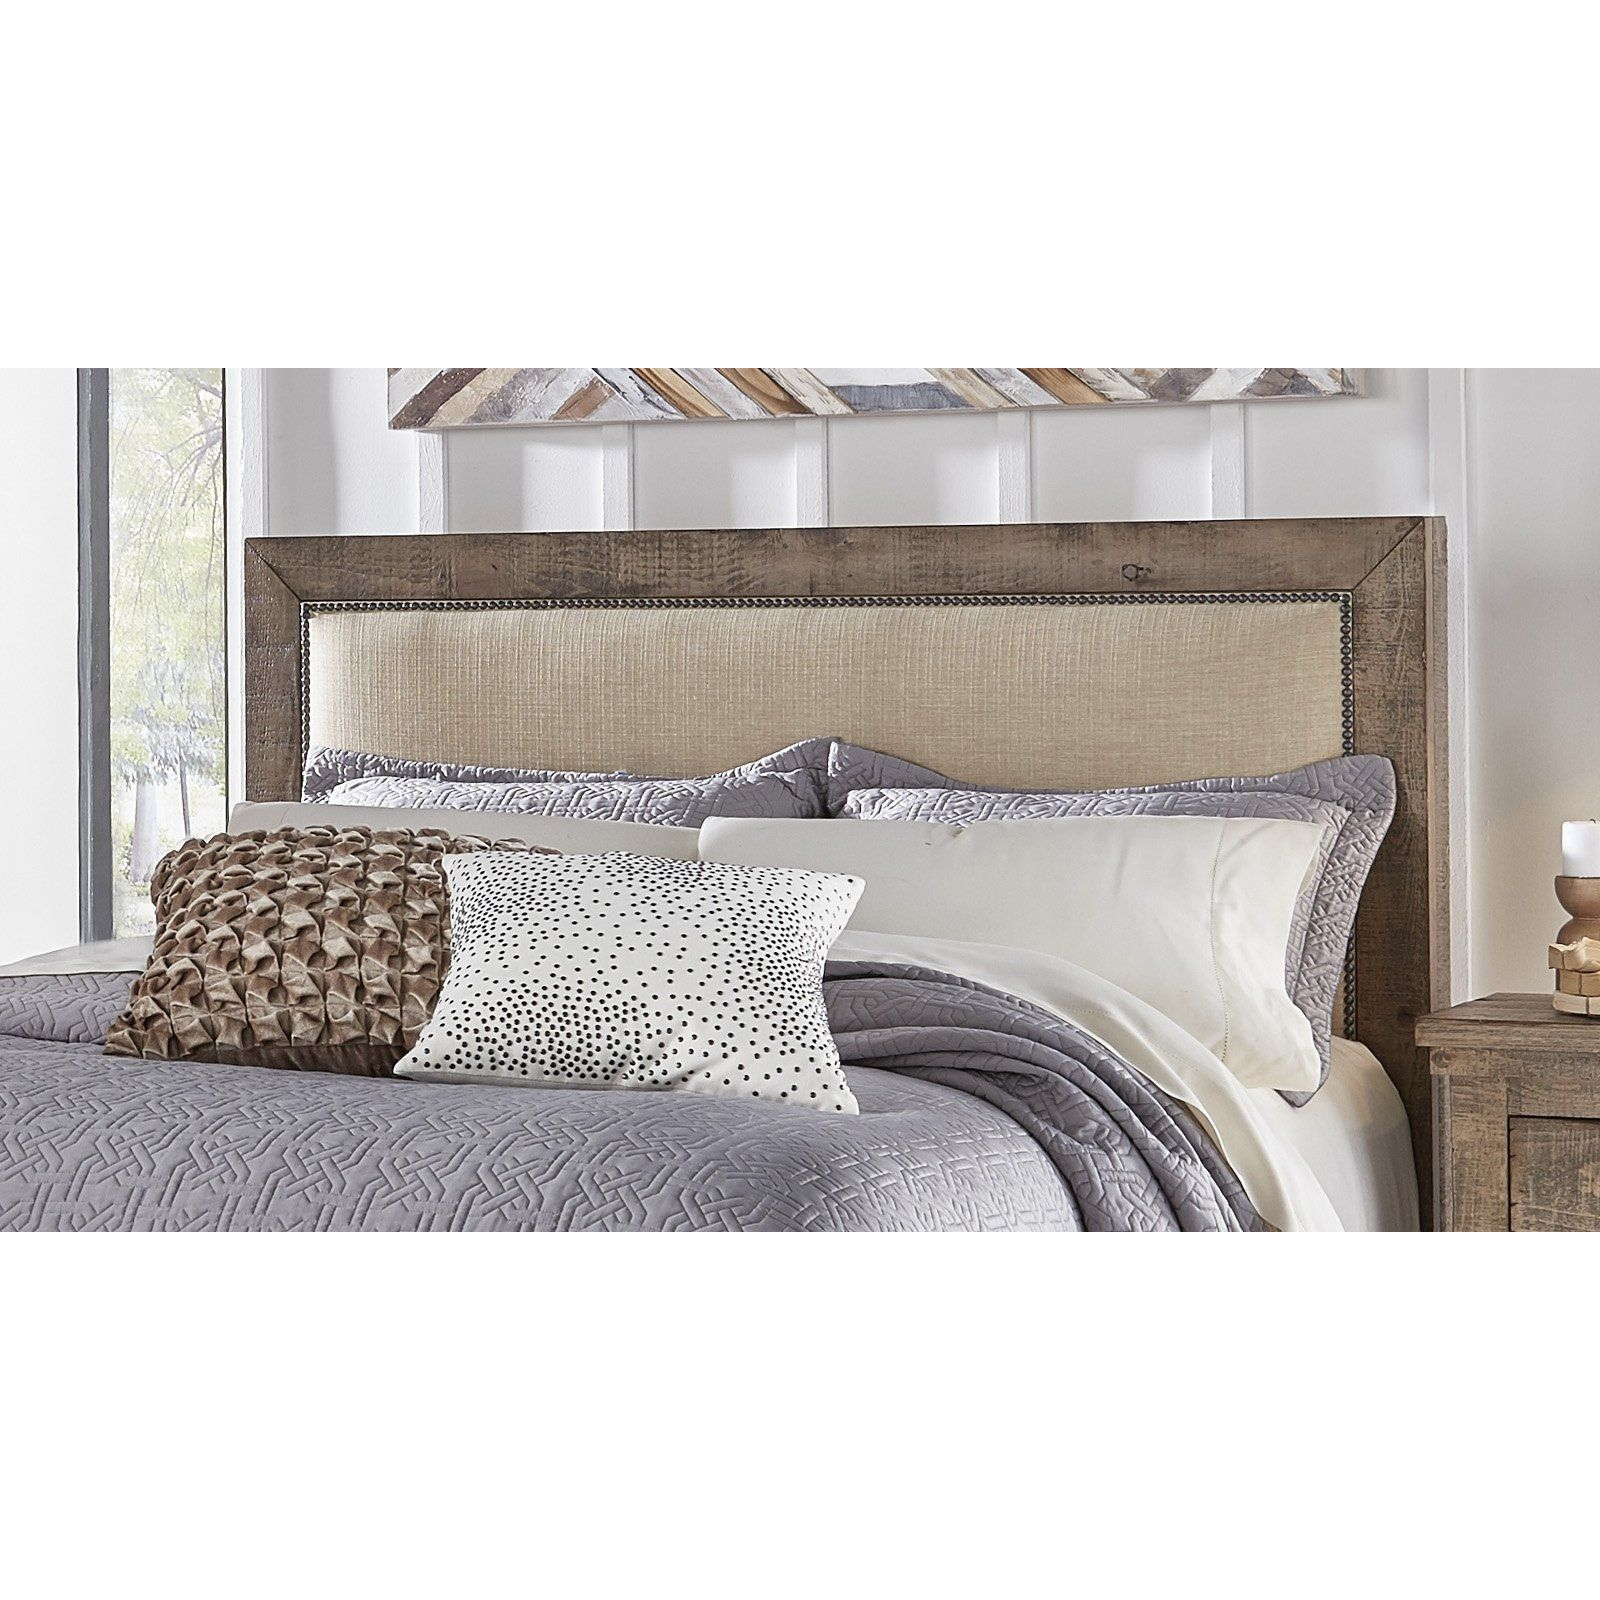 Progressive Furniture Willow Upholstered Headboard from